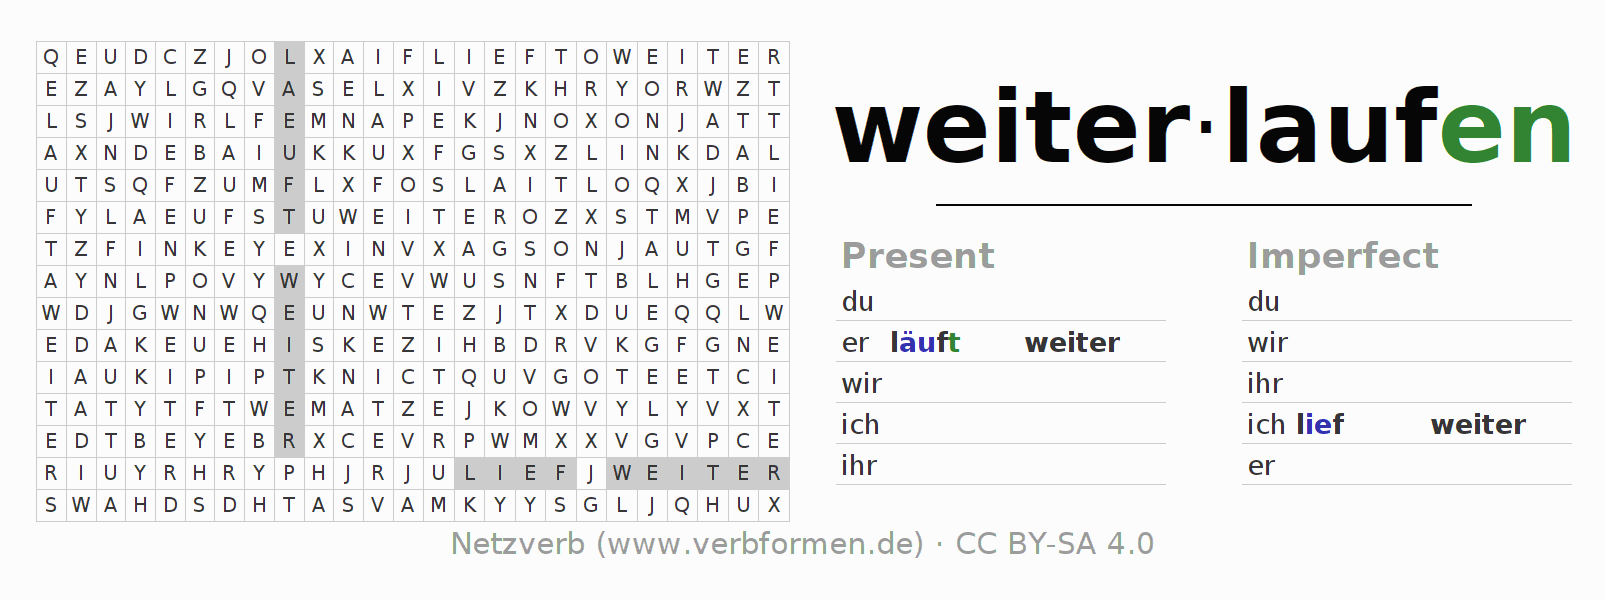 Word search puzzle for the conjugation of the verb weiterlaufen